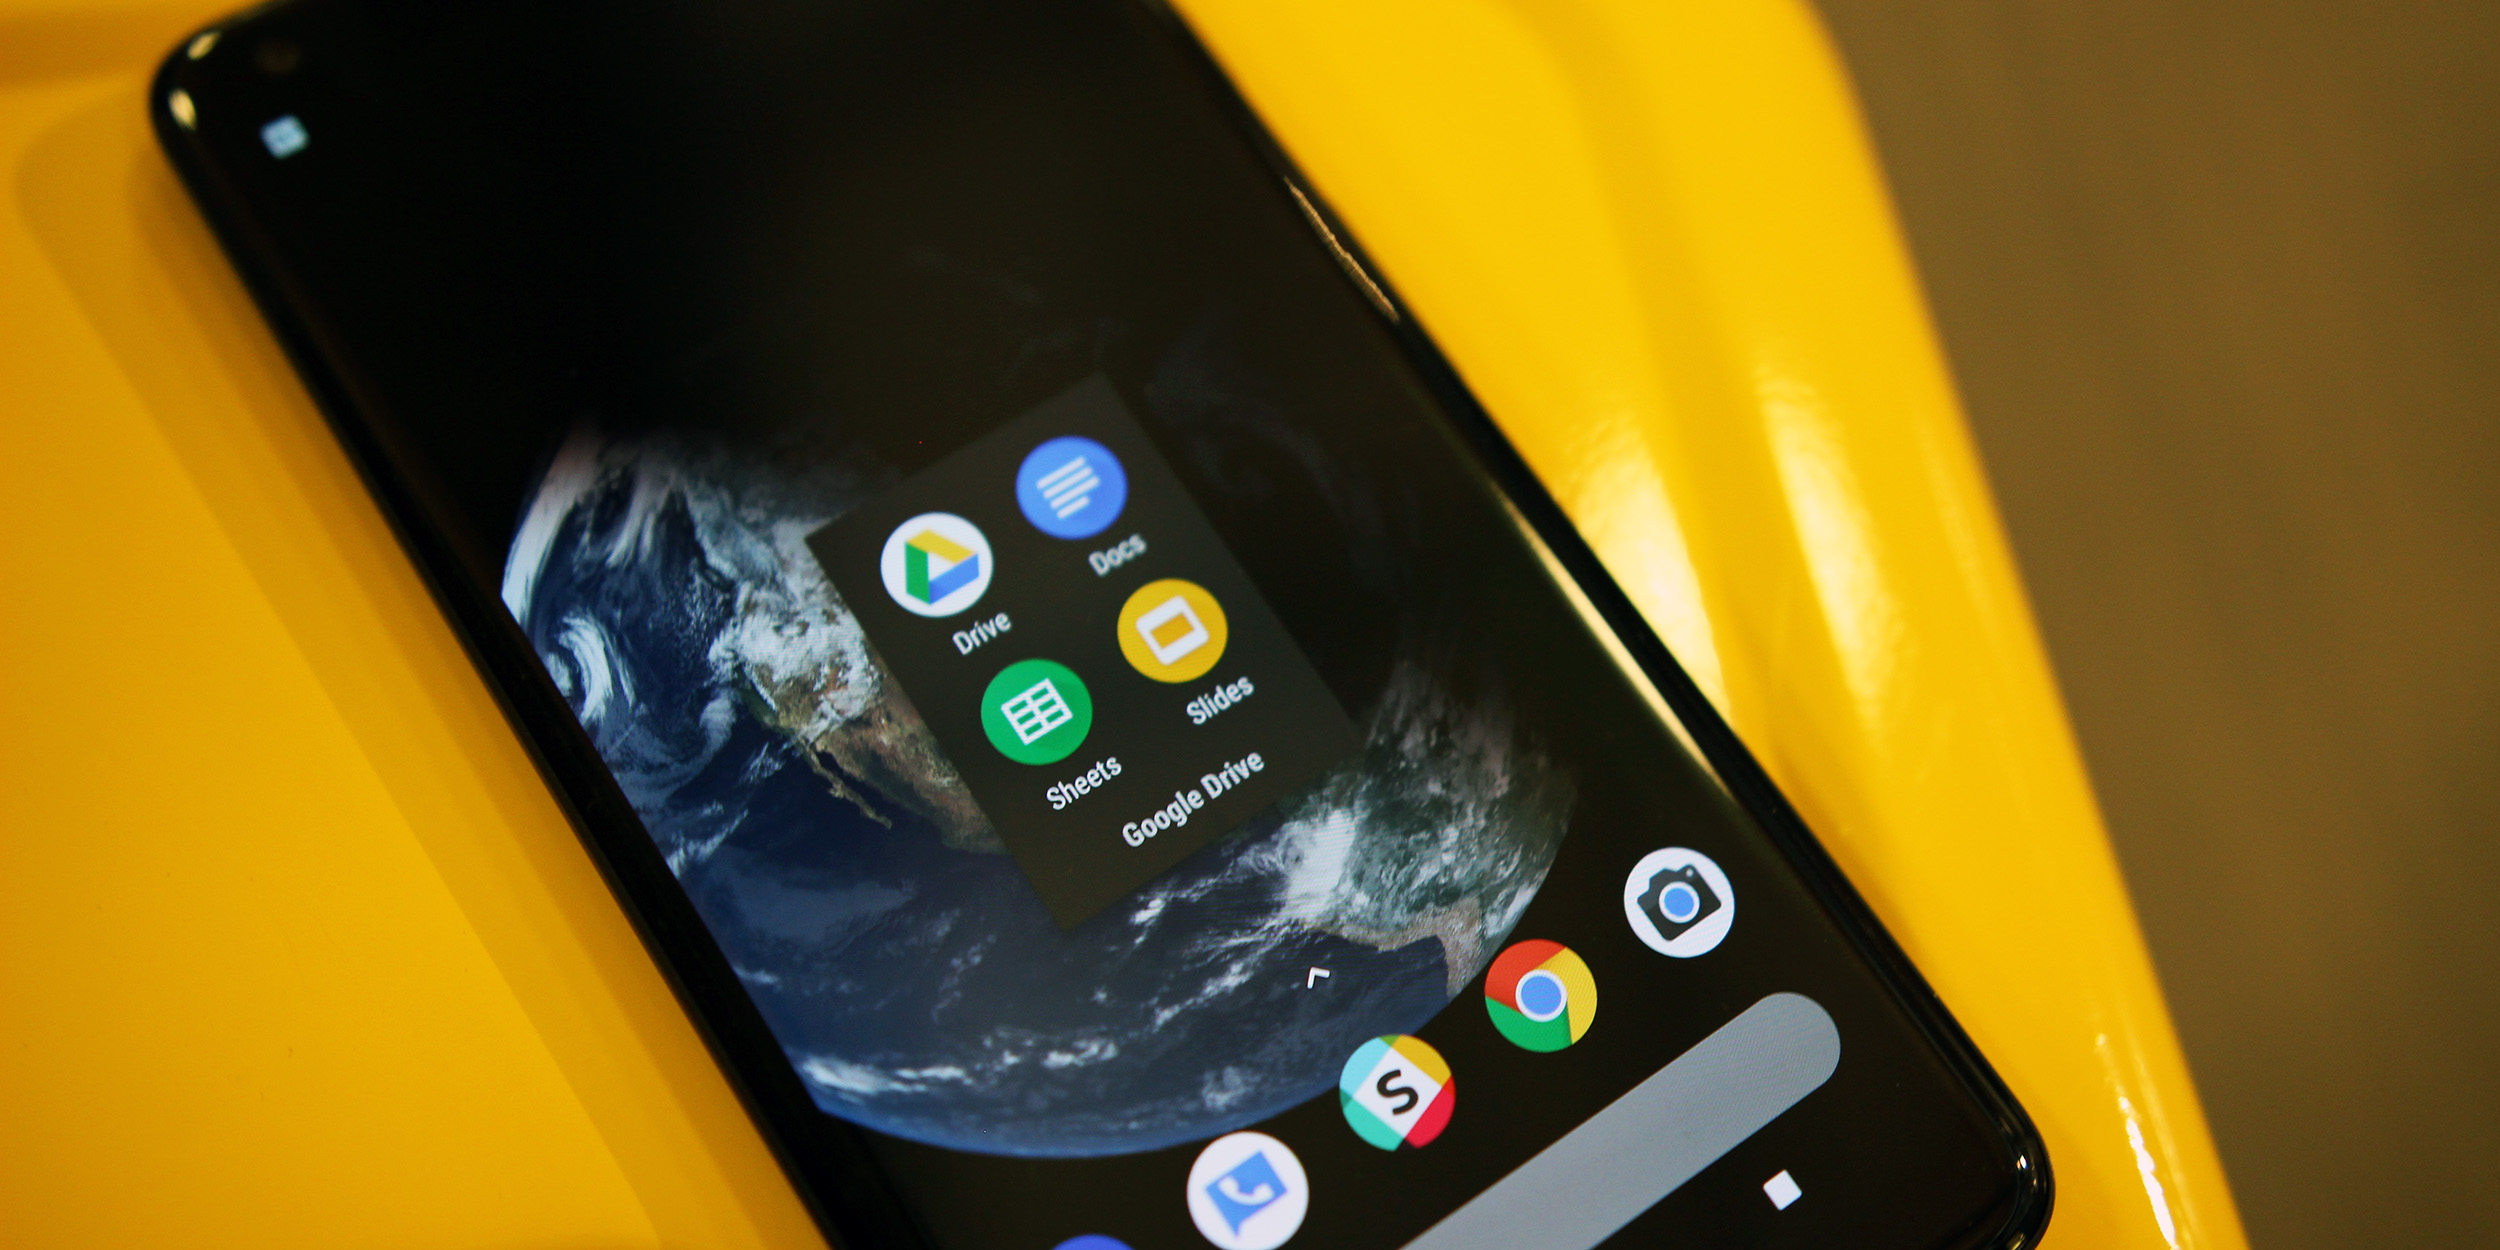 Google Material Theme revamp rolls out to Docs, Sheets, and Slides for Android